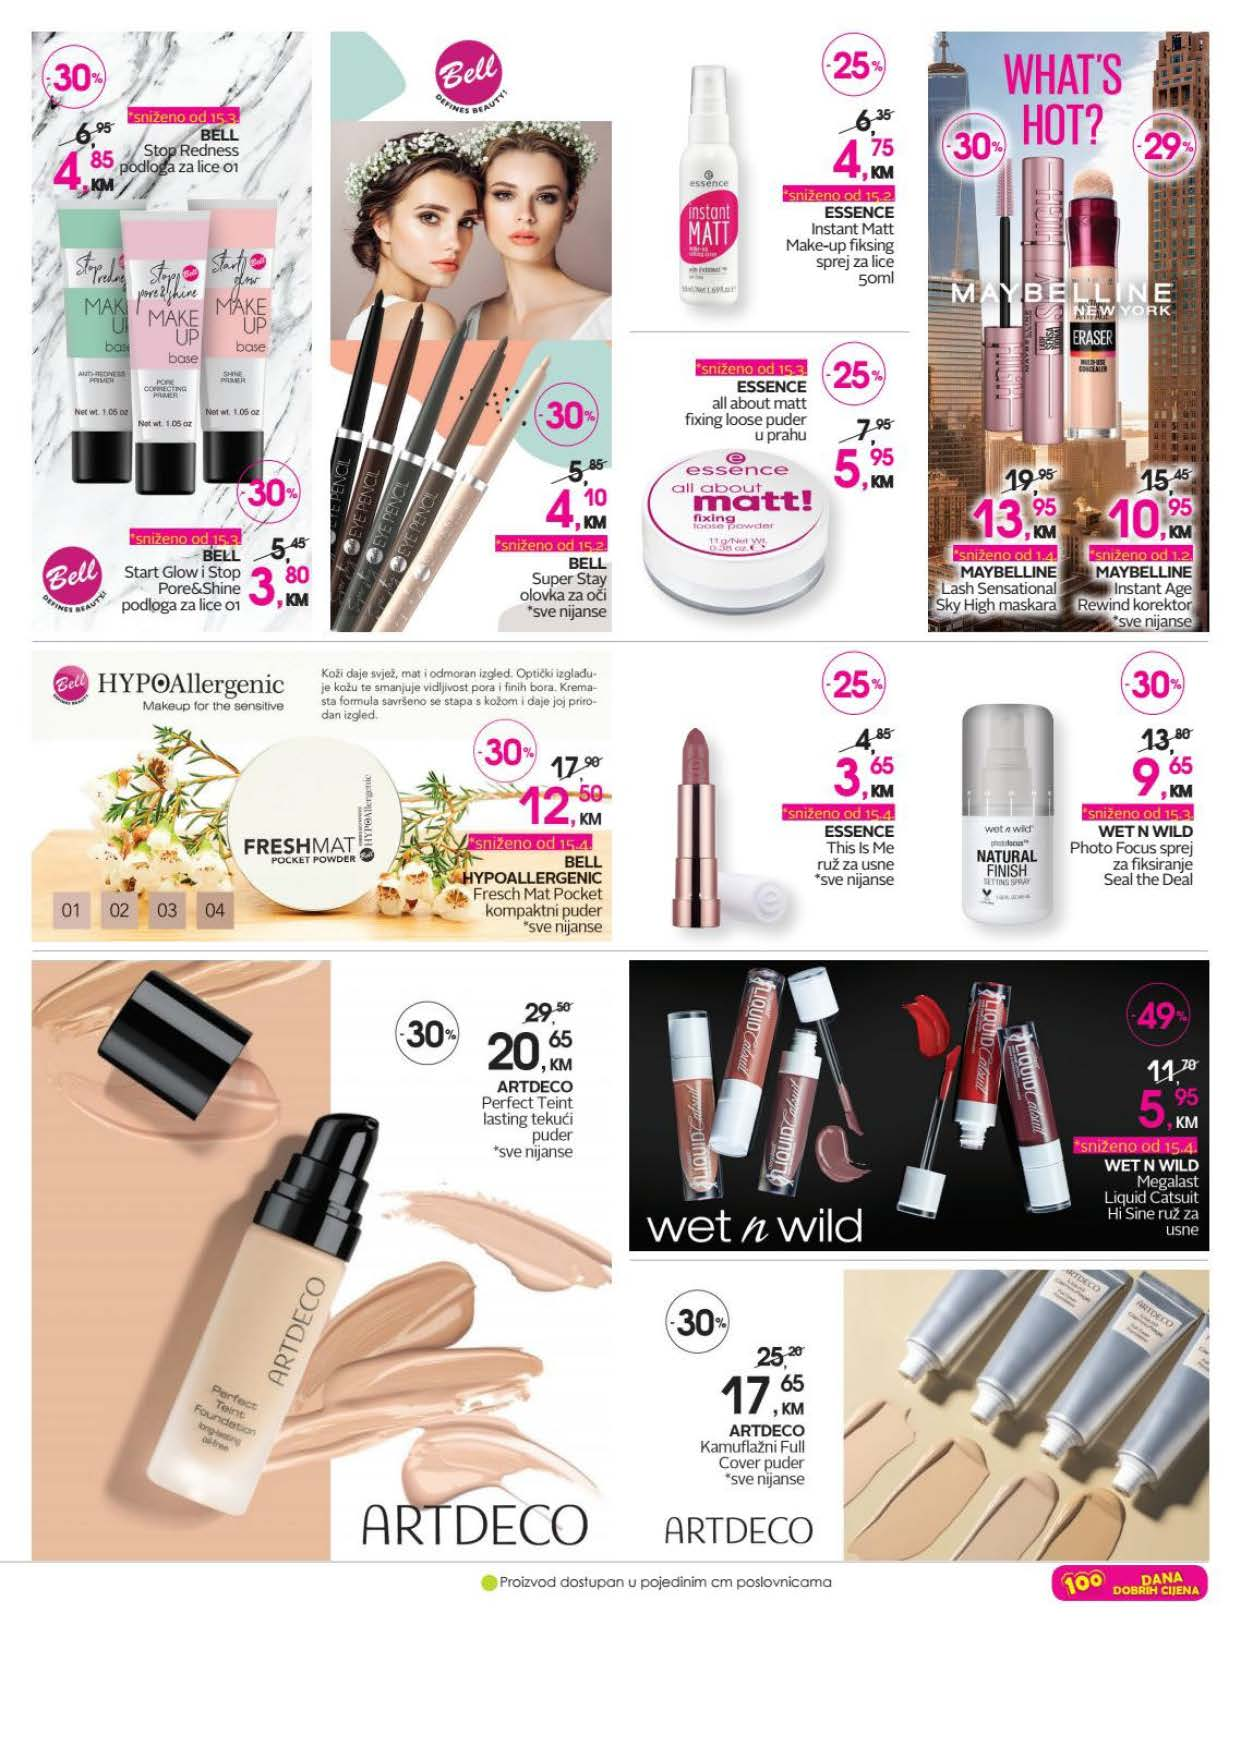 COSMETIC MARKET CM Katalog APRIL 2021 16.04.2021. 30.04.2021. Page 03